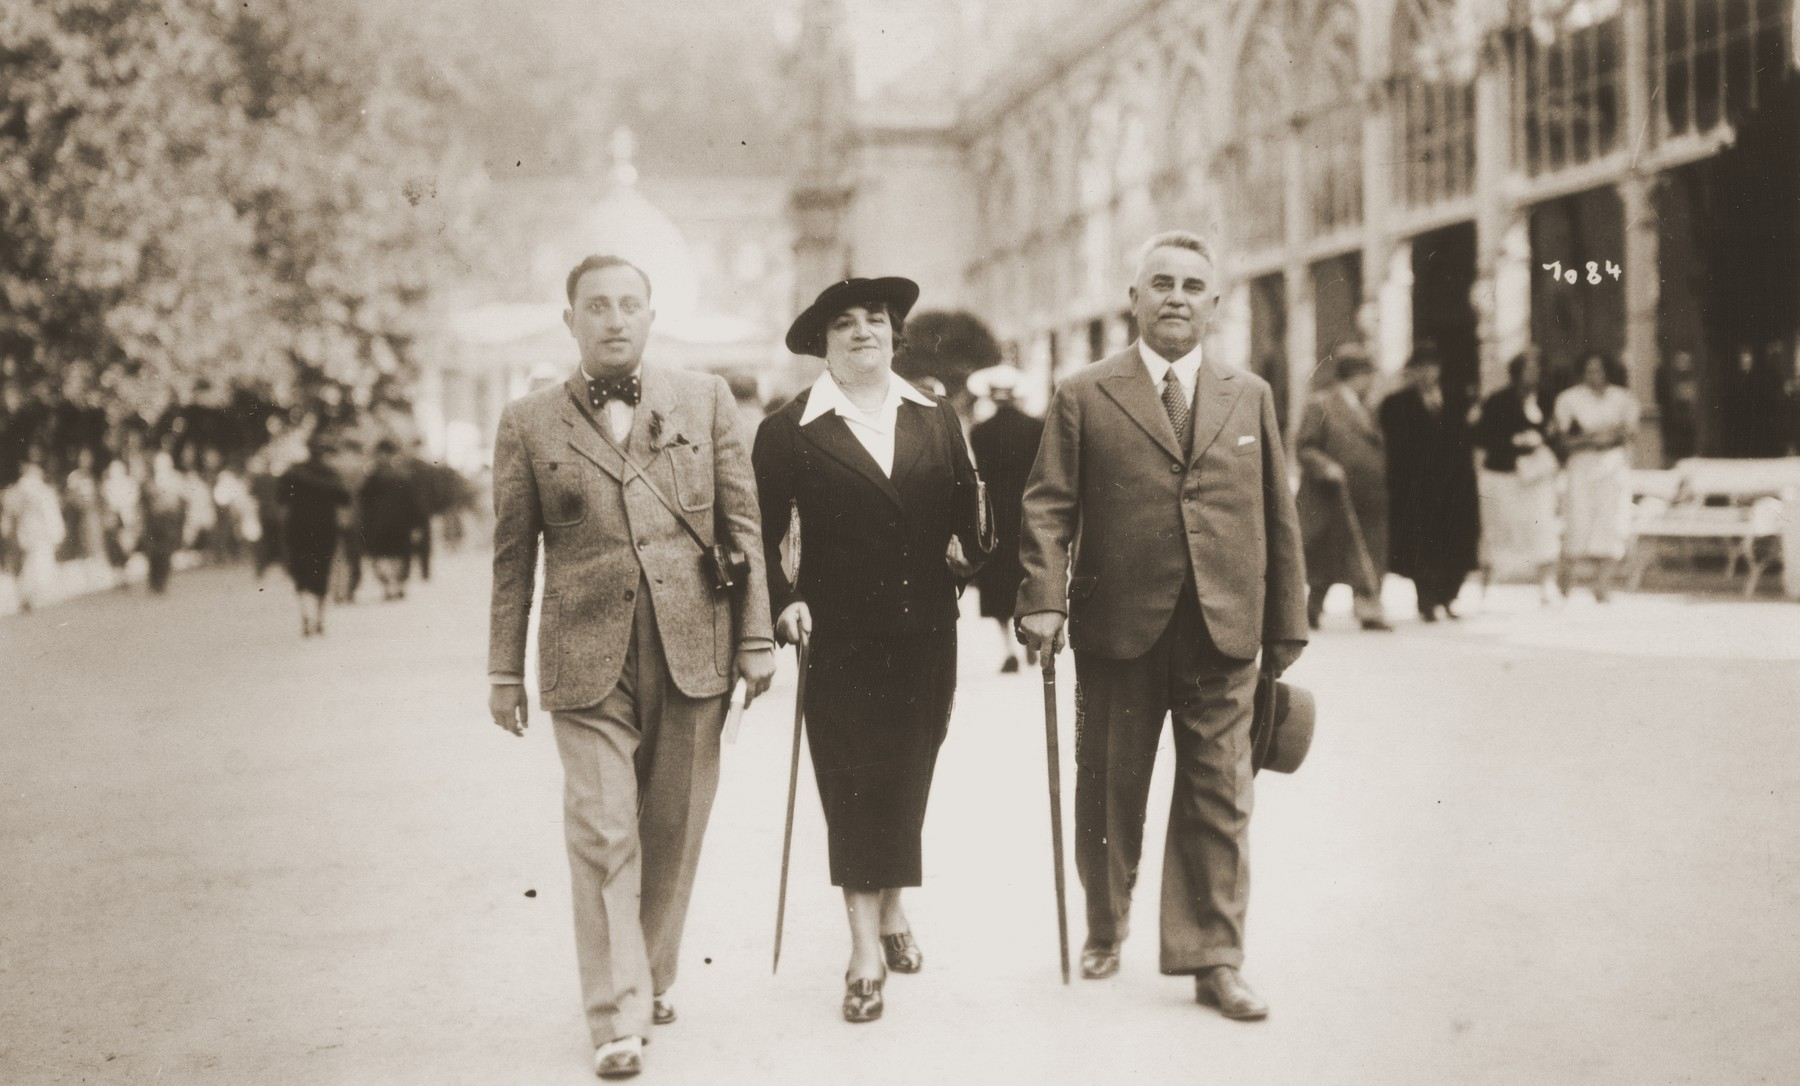 Two men and a woman walk along a street while on vacation in Marienbad, Czechoslovakia.  Julius Reinhold is pictured on the left.